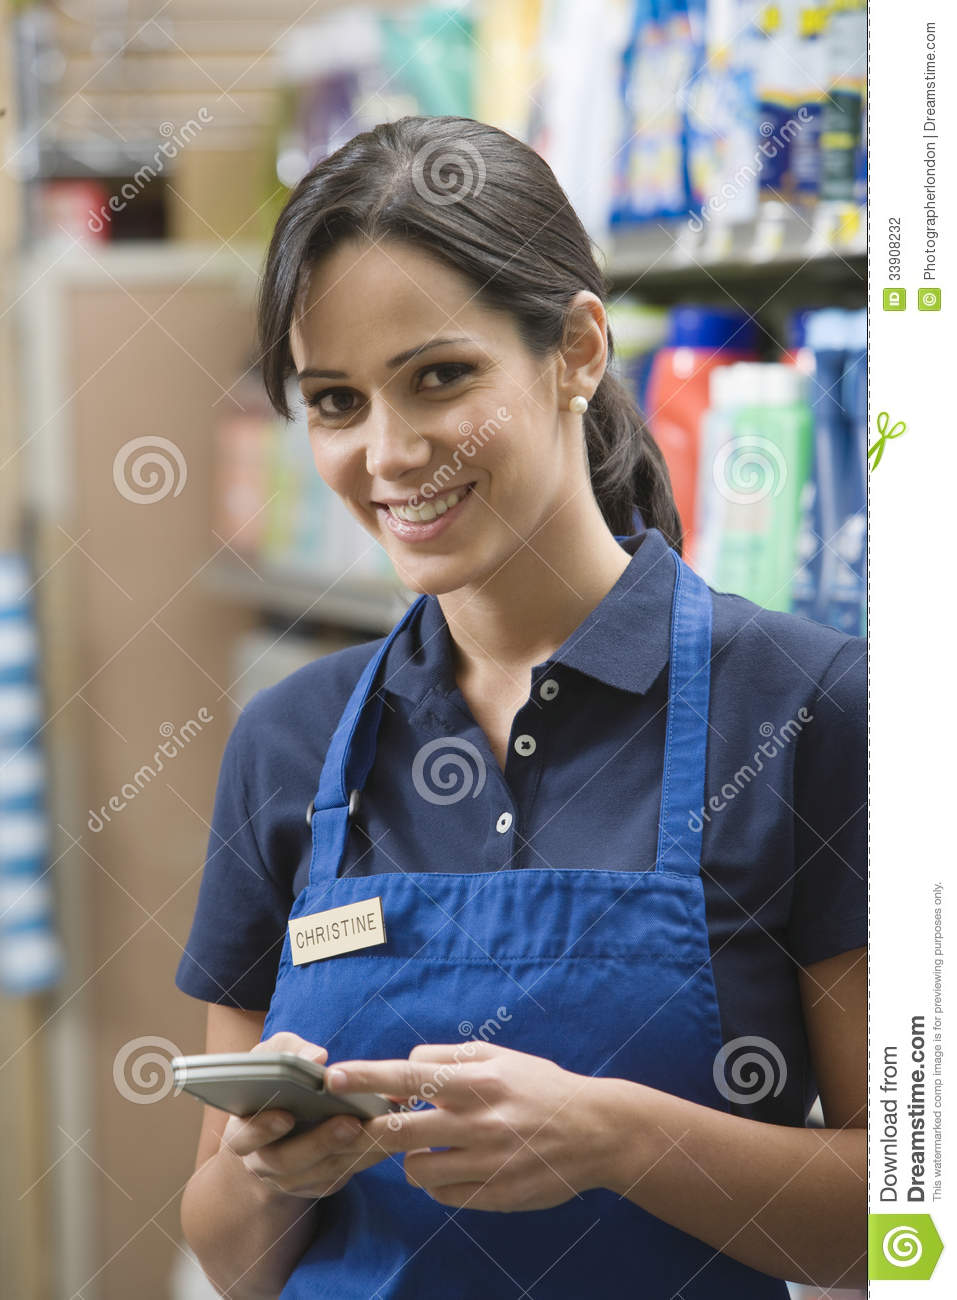 Blue apron employees